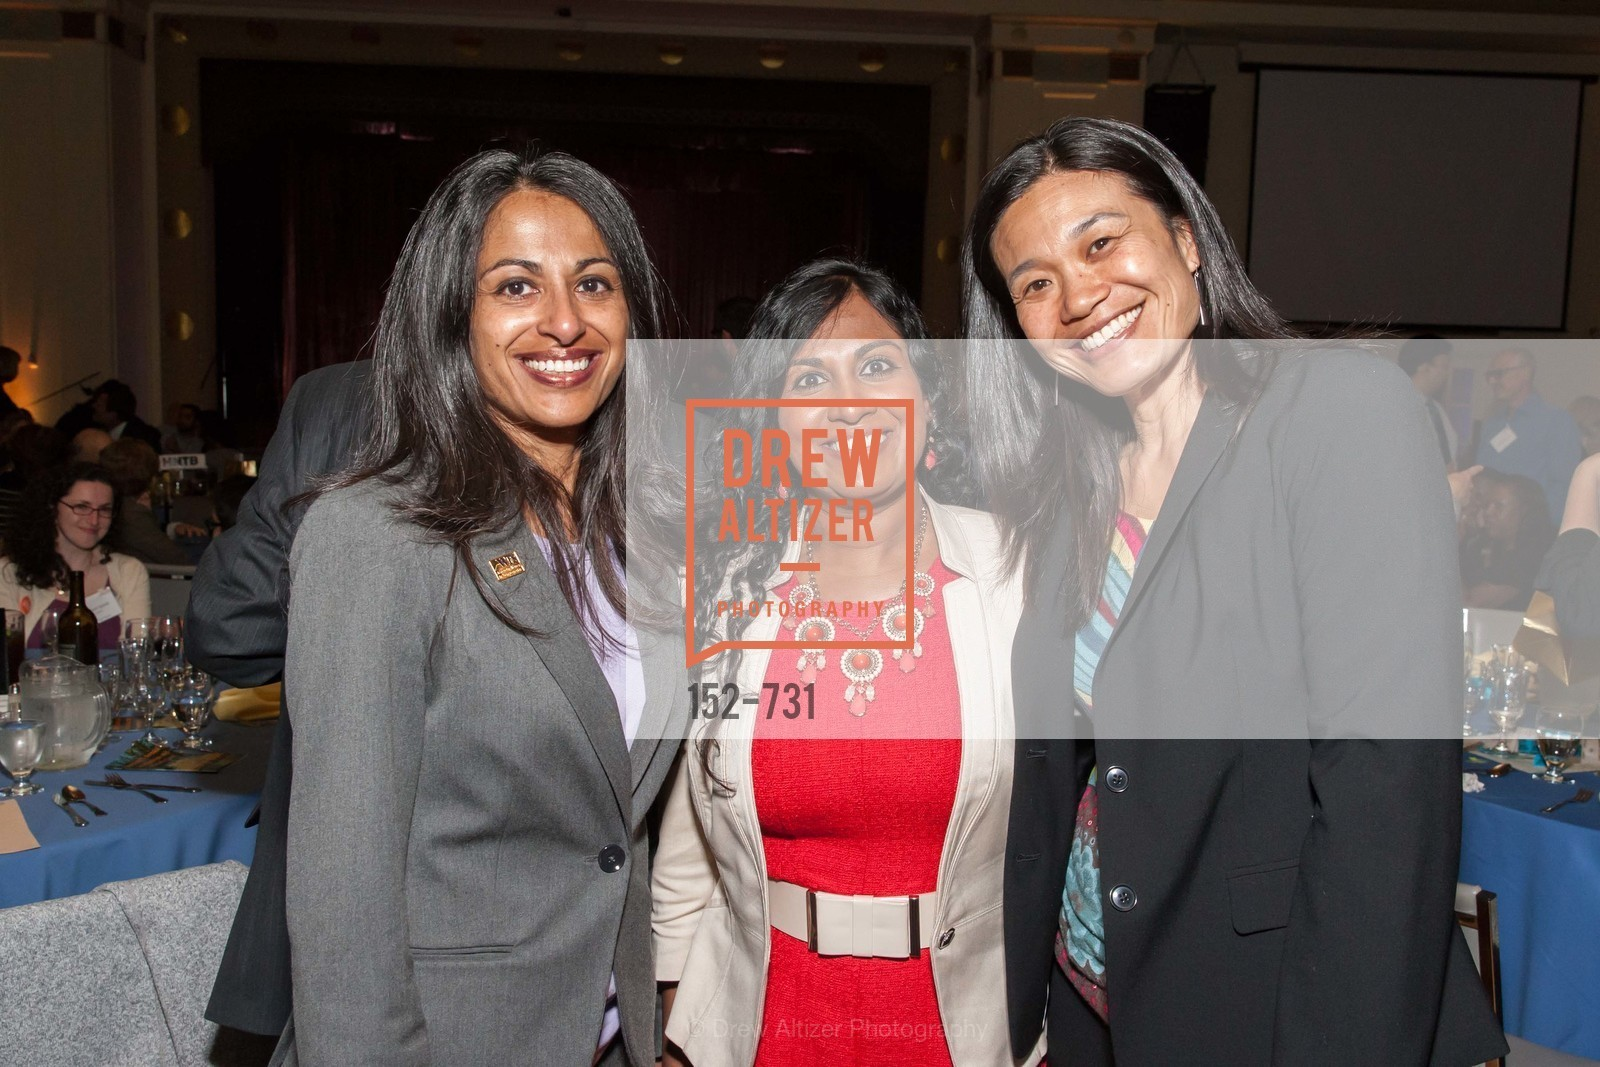 Charissa Frank, Sajeena, Camille Tsao, WOMEN'S TRANSPORTATION SEMINAR SF Bay Area Chapter Annual Scholarship Awards, US, May 14th, 2015,Drew Altizer, Drew Altizer Photography, full-service agency, private events, San Francisco photographer, photographer california